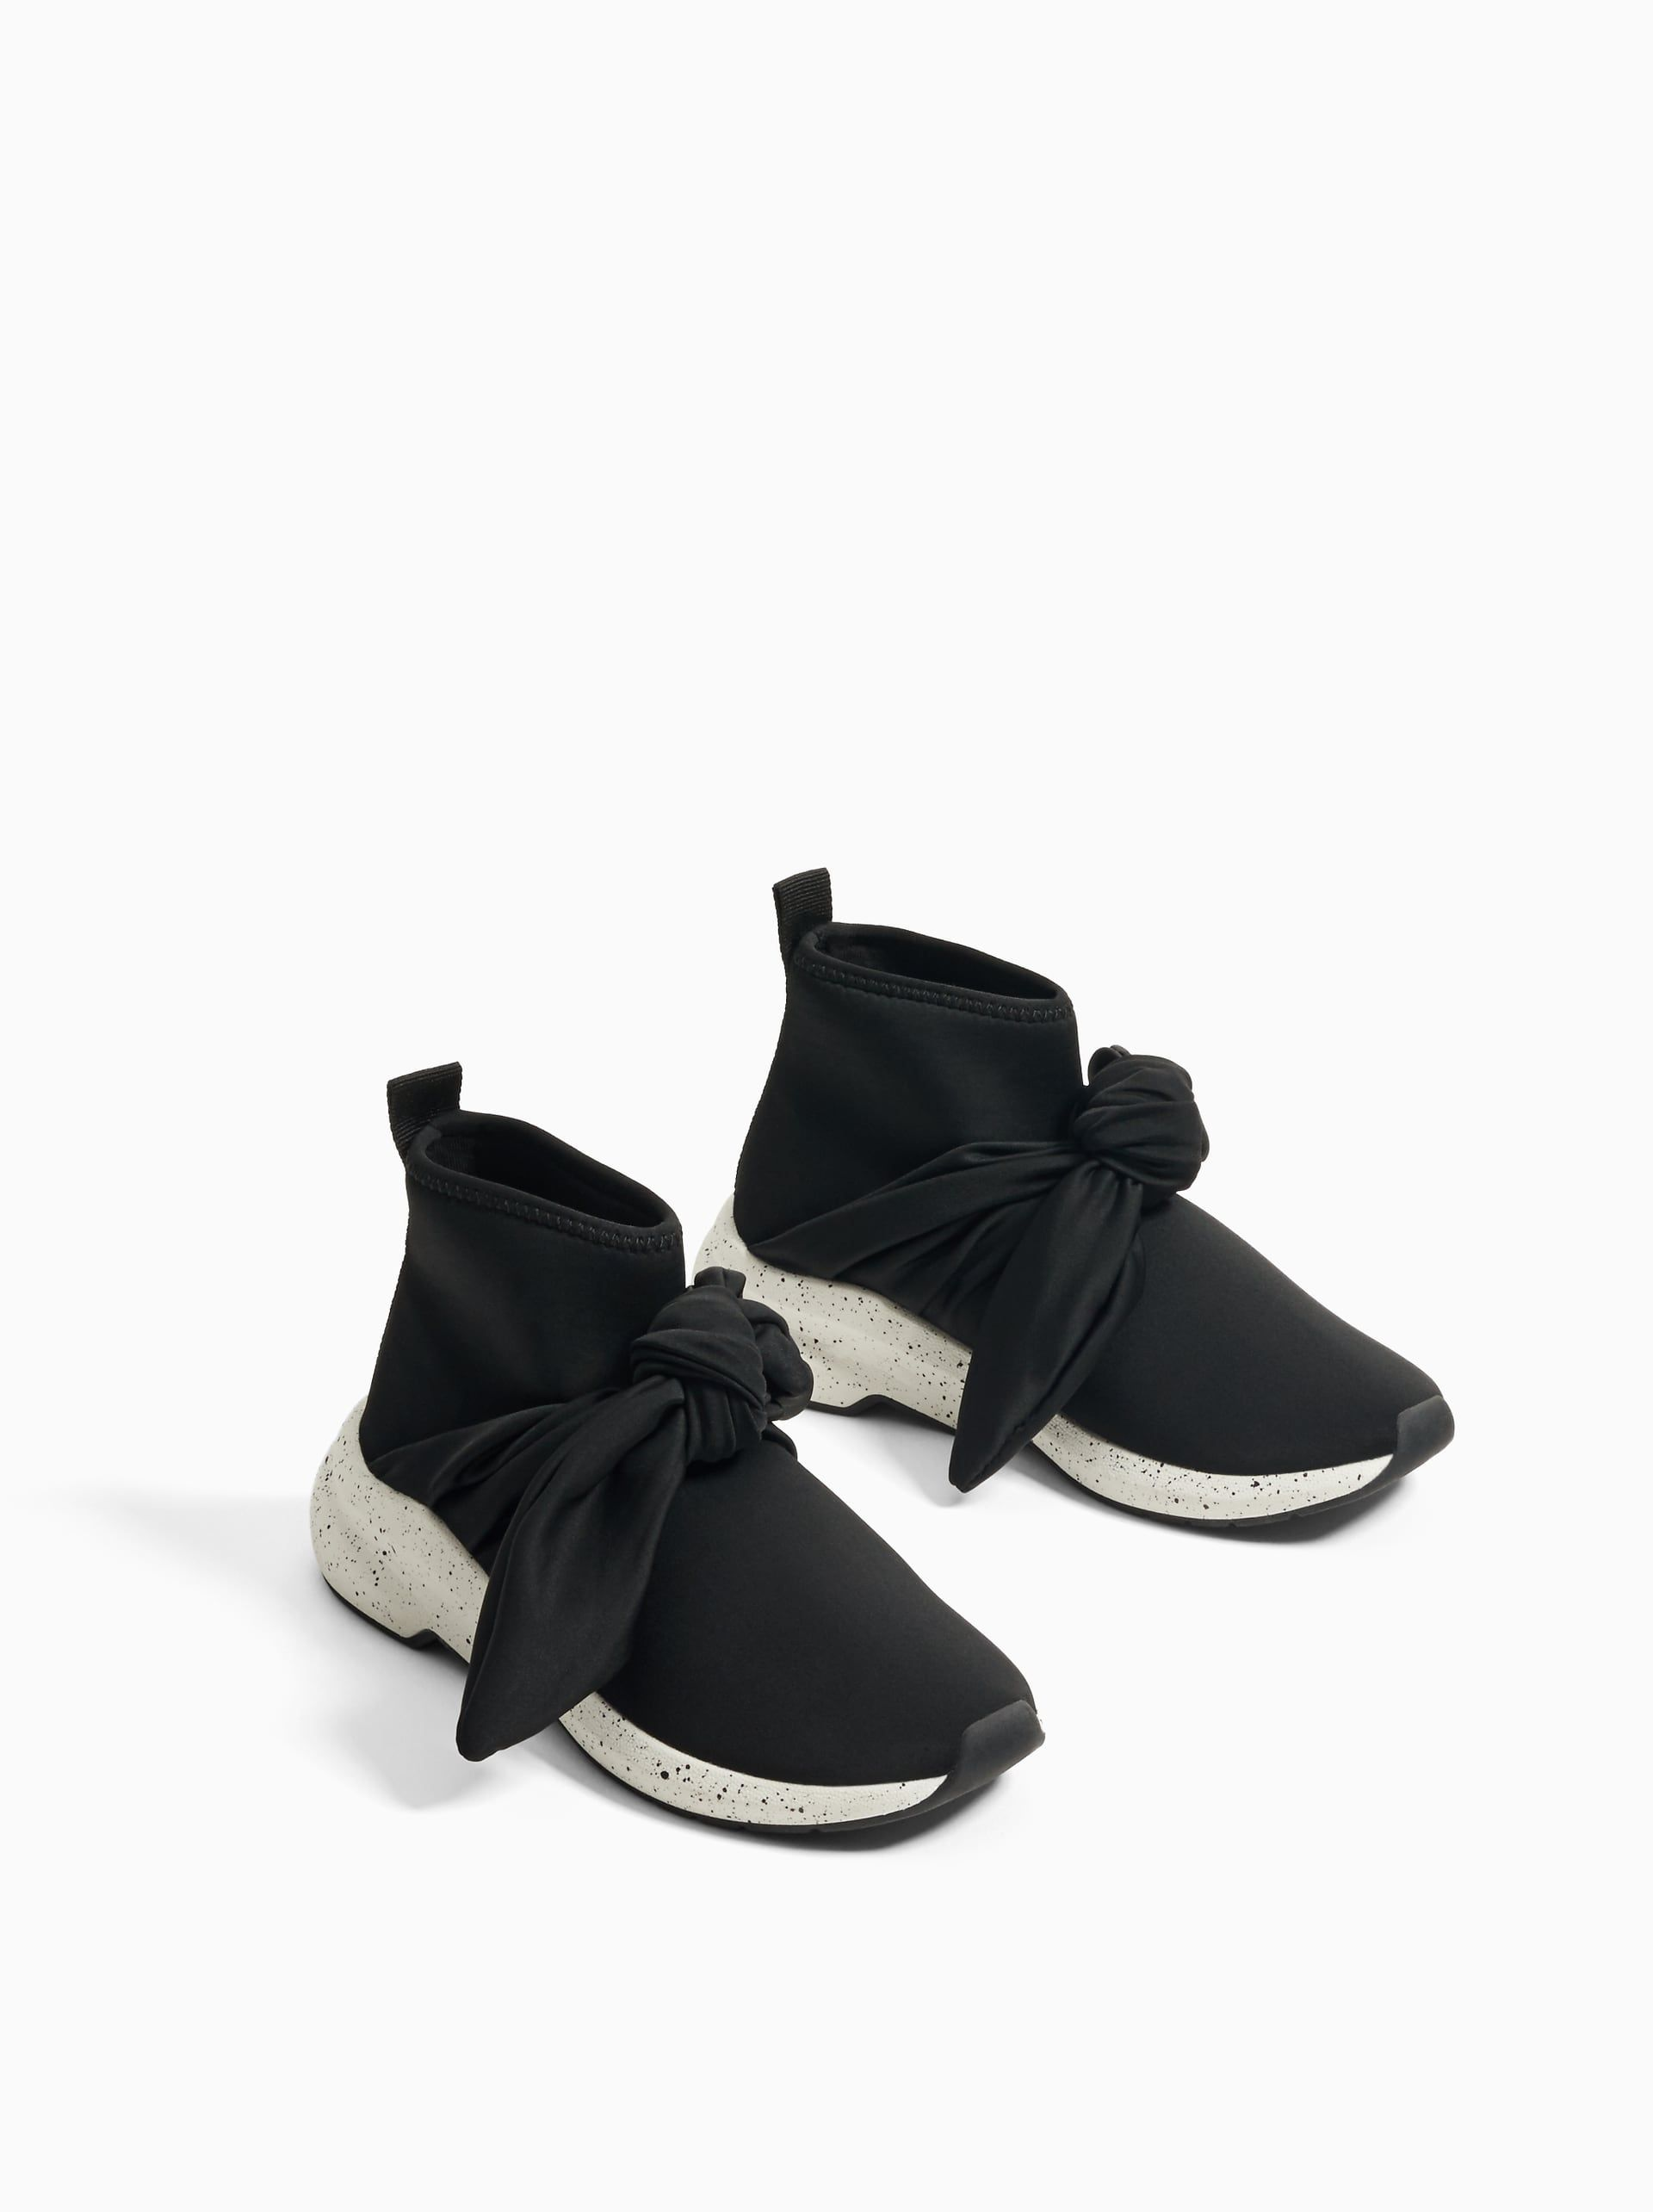 Image 2 of HIGH-TOP SOCK-STYLE SNEAKERS